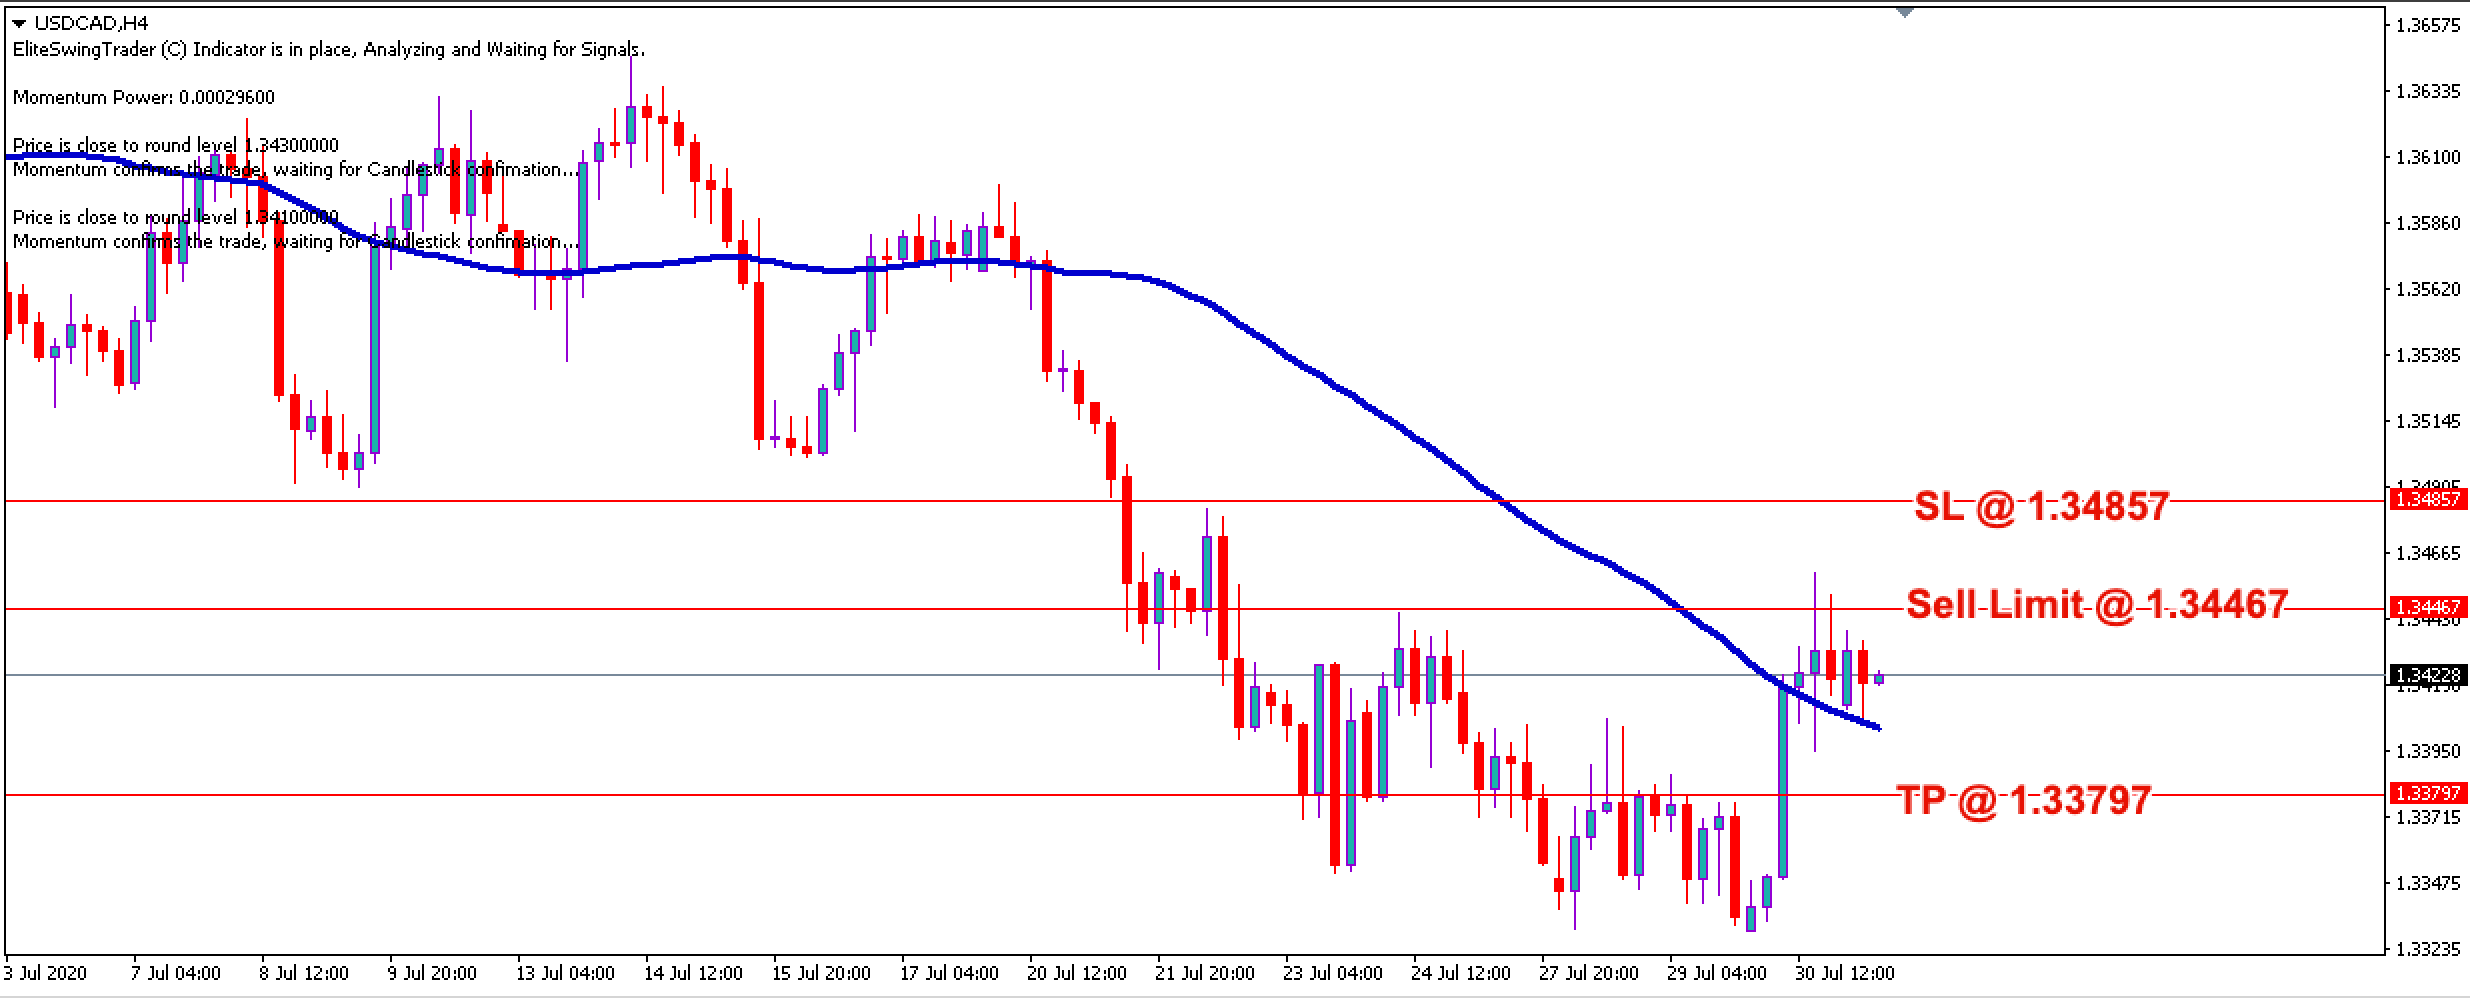 USD/CAD Daily Price Forecast - 31st July 2020